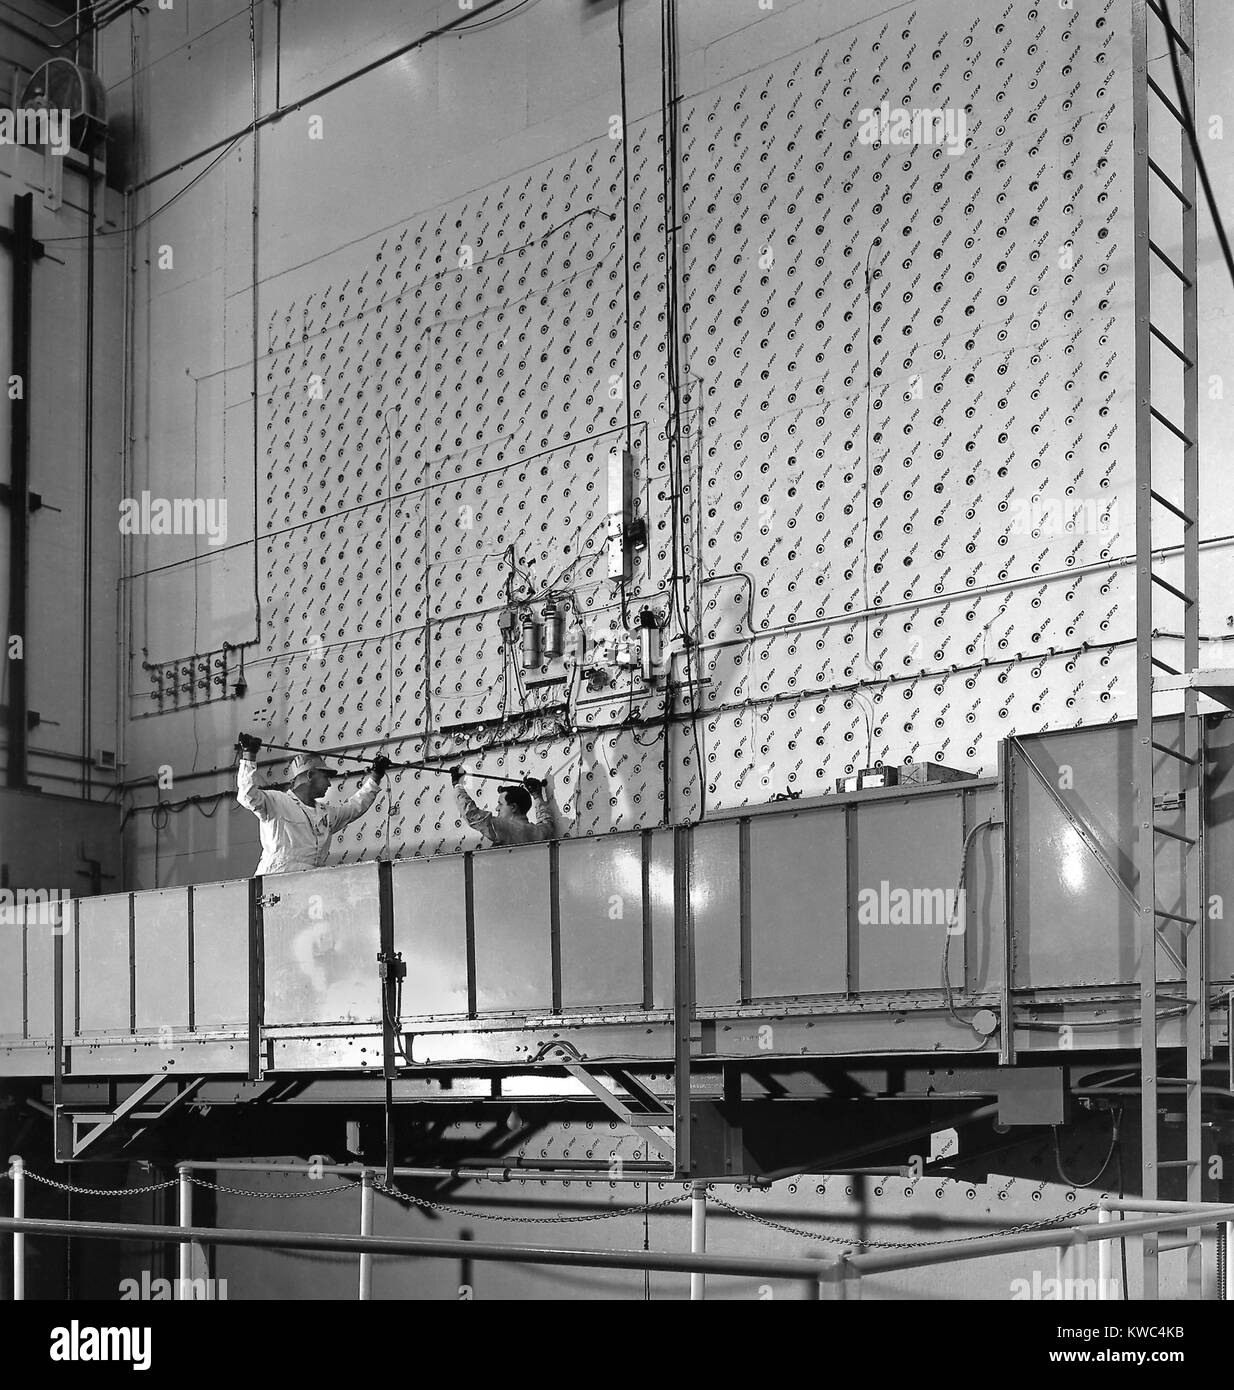 X-10 Graphite Reactor's was the world's second artificial nuclear reactor. Photo shows the x-10's concrete - Stock Image